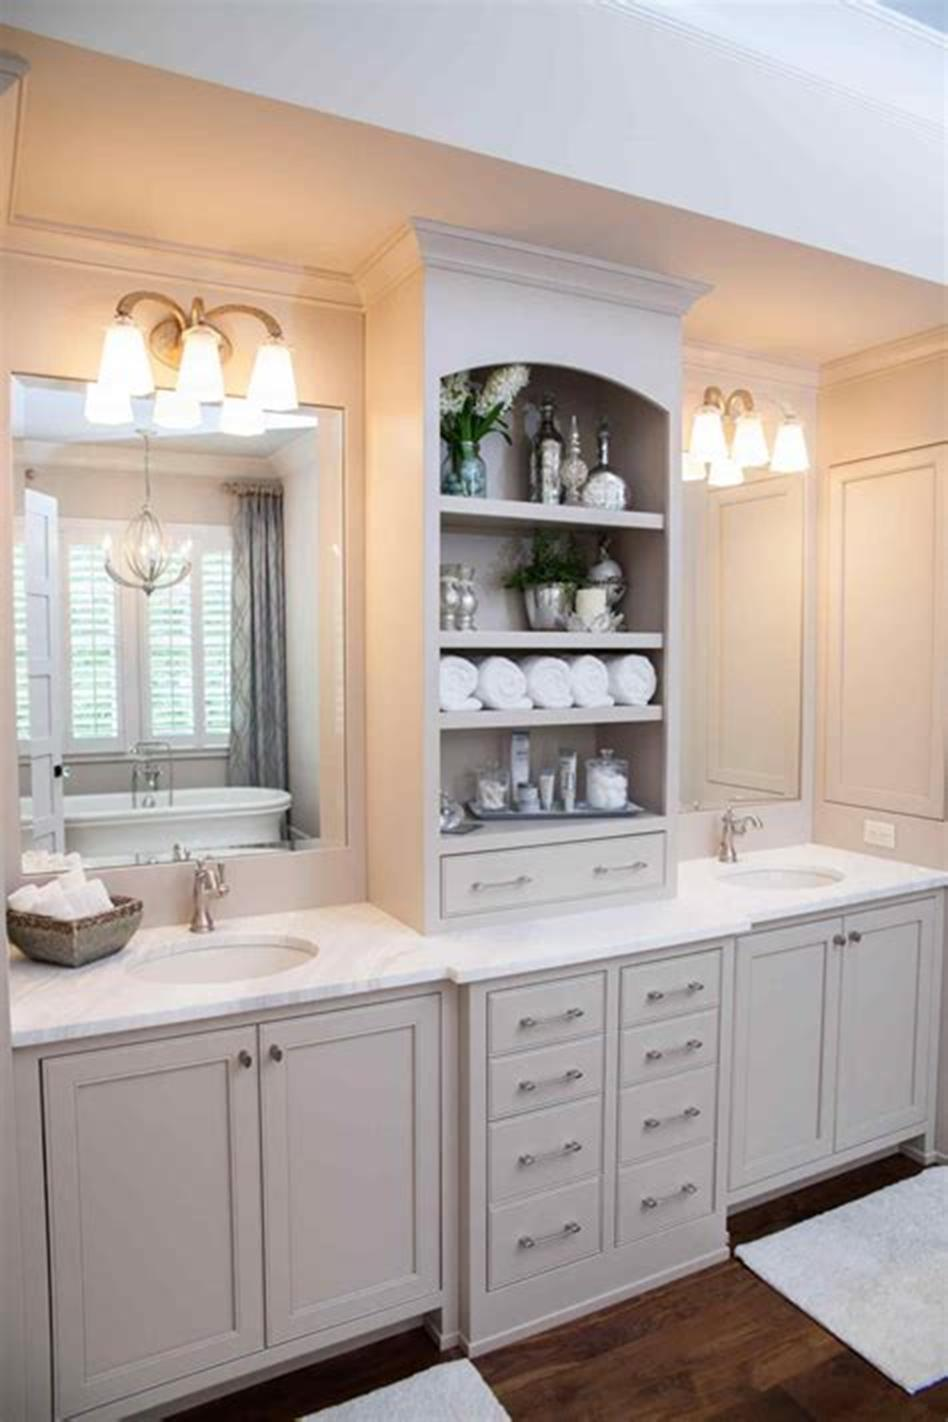 35 Cheap Country Rustic Farmhouse Bathroom Vanities Ideas ... on Rustic Farmhouse Bathroom  id=49401